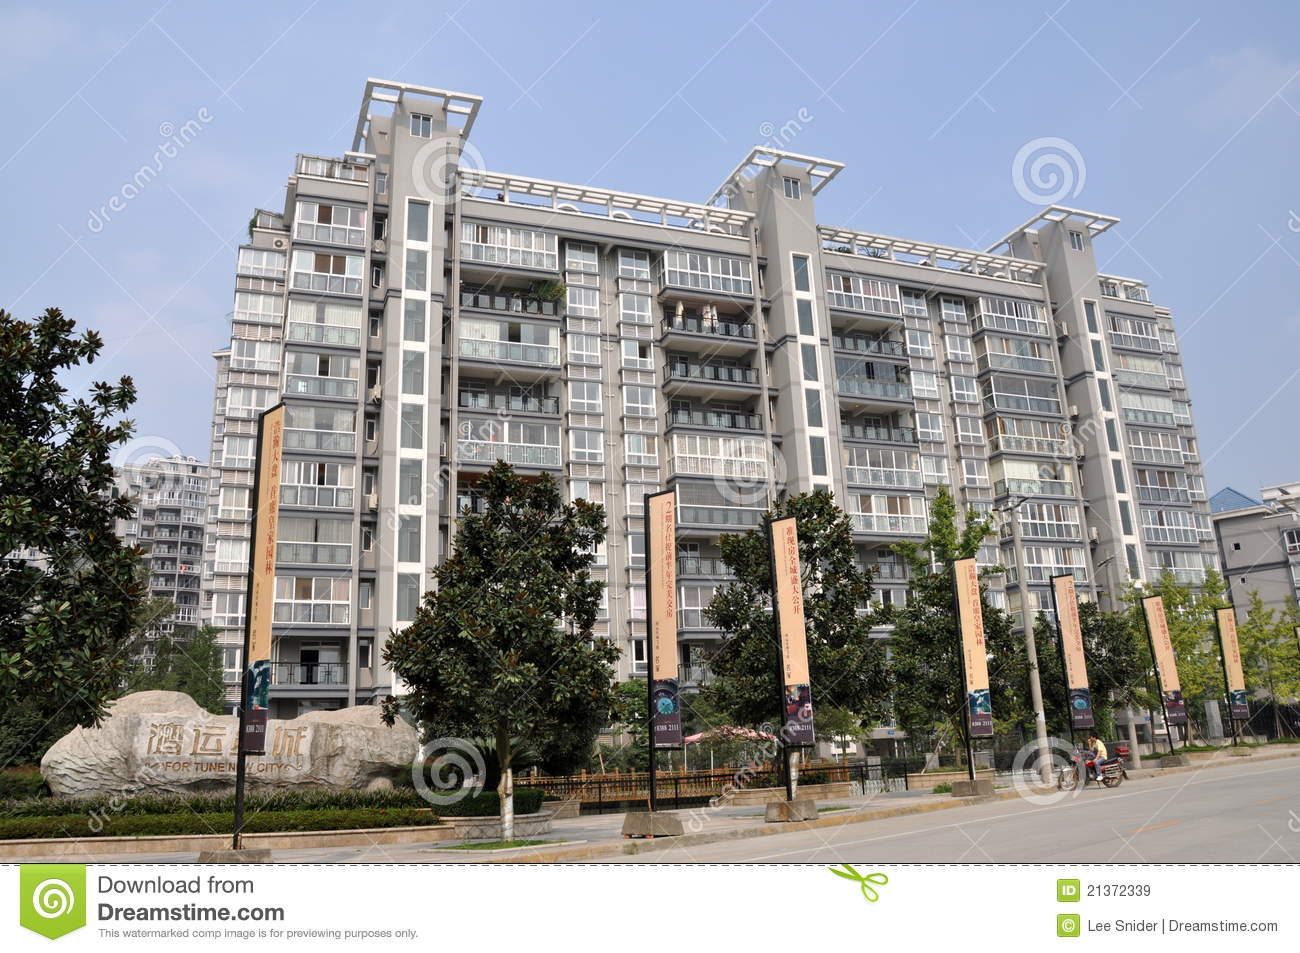 pengzhou, china high rise modern apartments editorial stock imagehandsome new high rise apartment buildings at the new fortune city complex in pengzhou, sichuan province, china are fine examples of modern chinese luxury